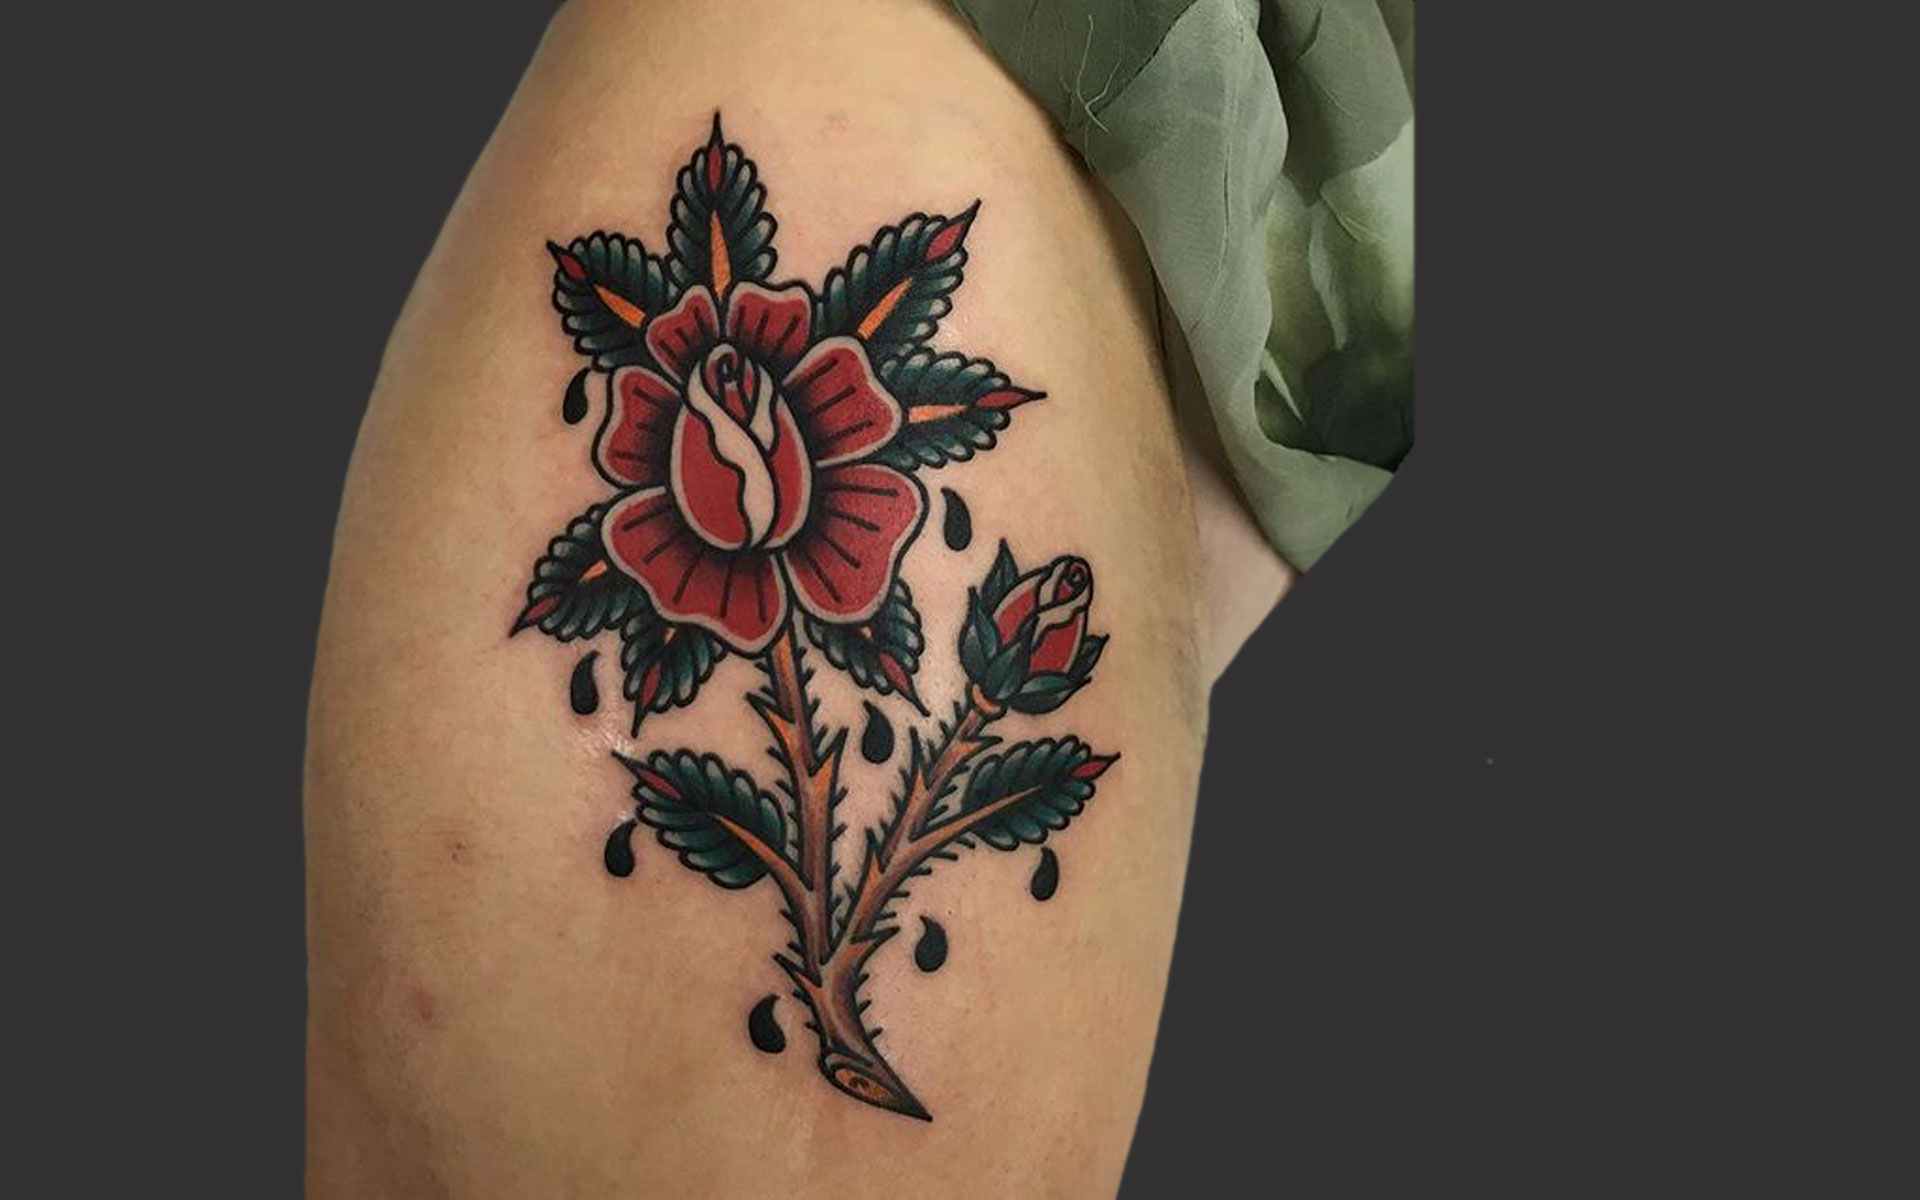 rock-of-ages-tattoo-tom-rose